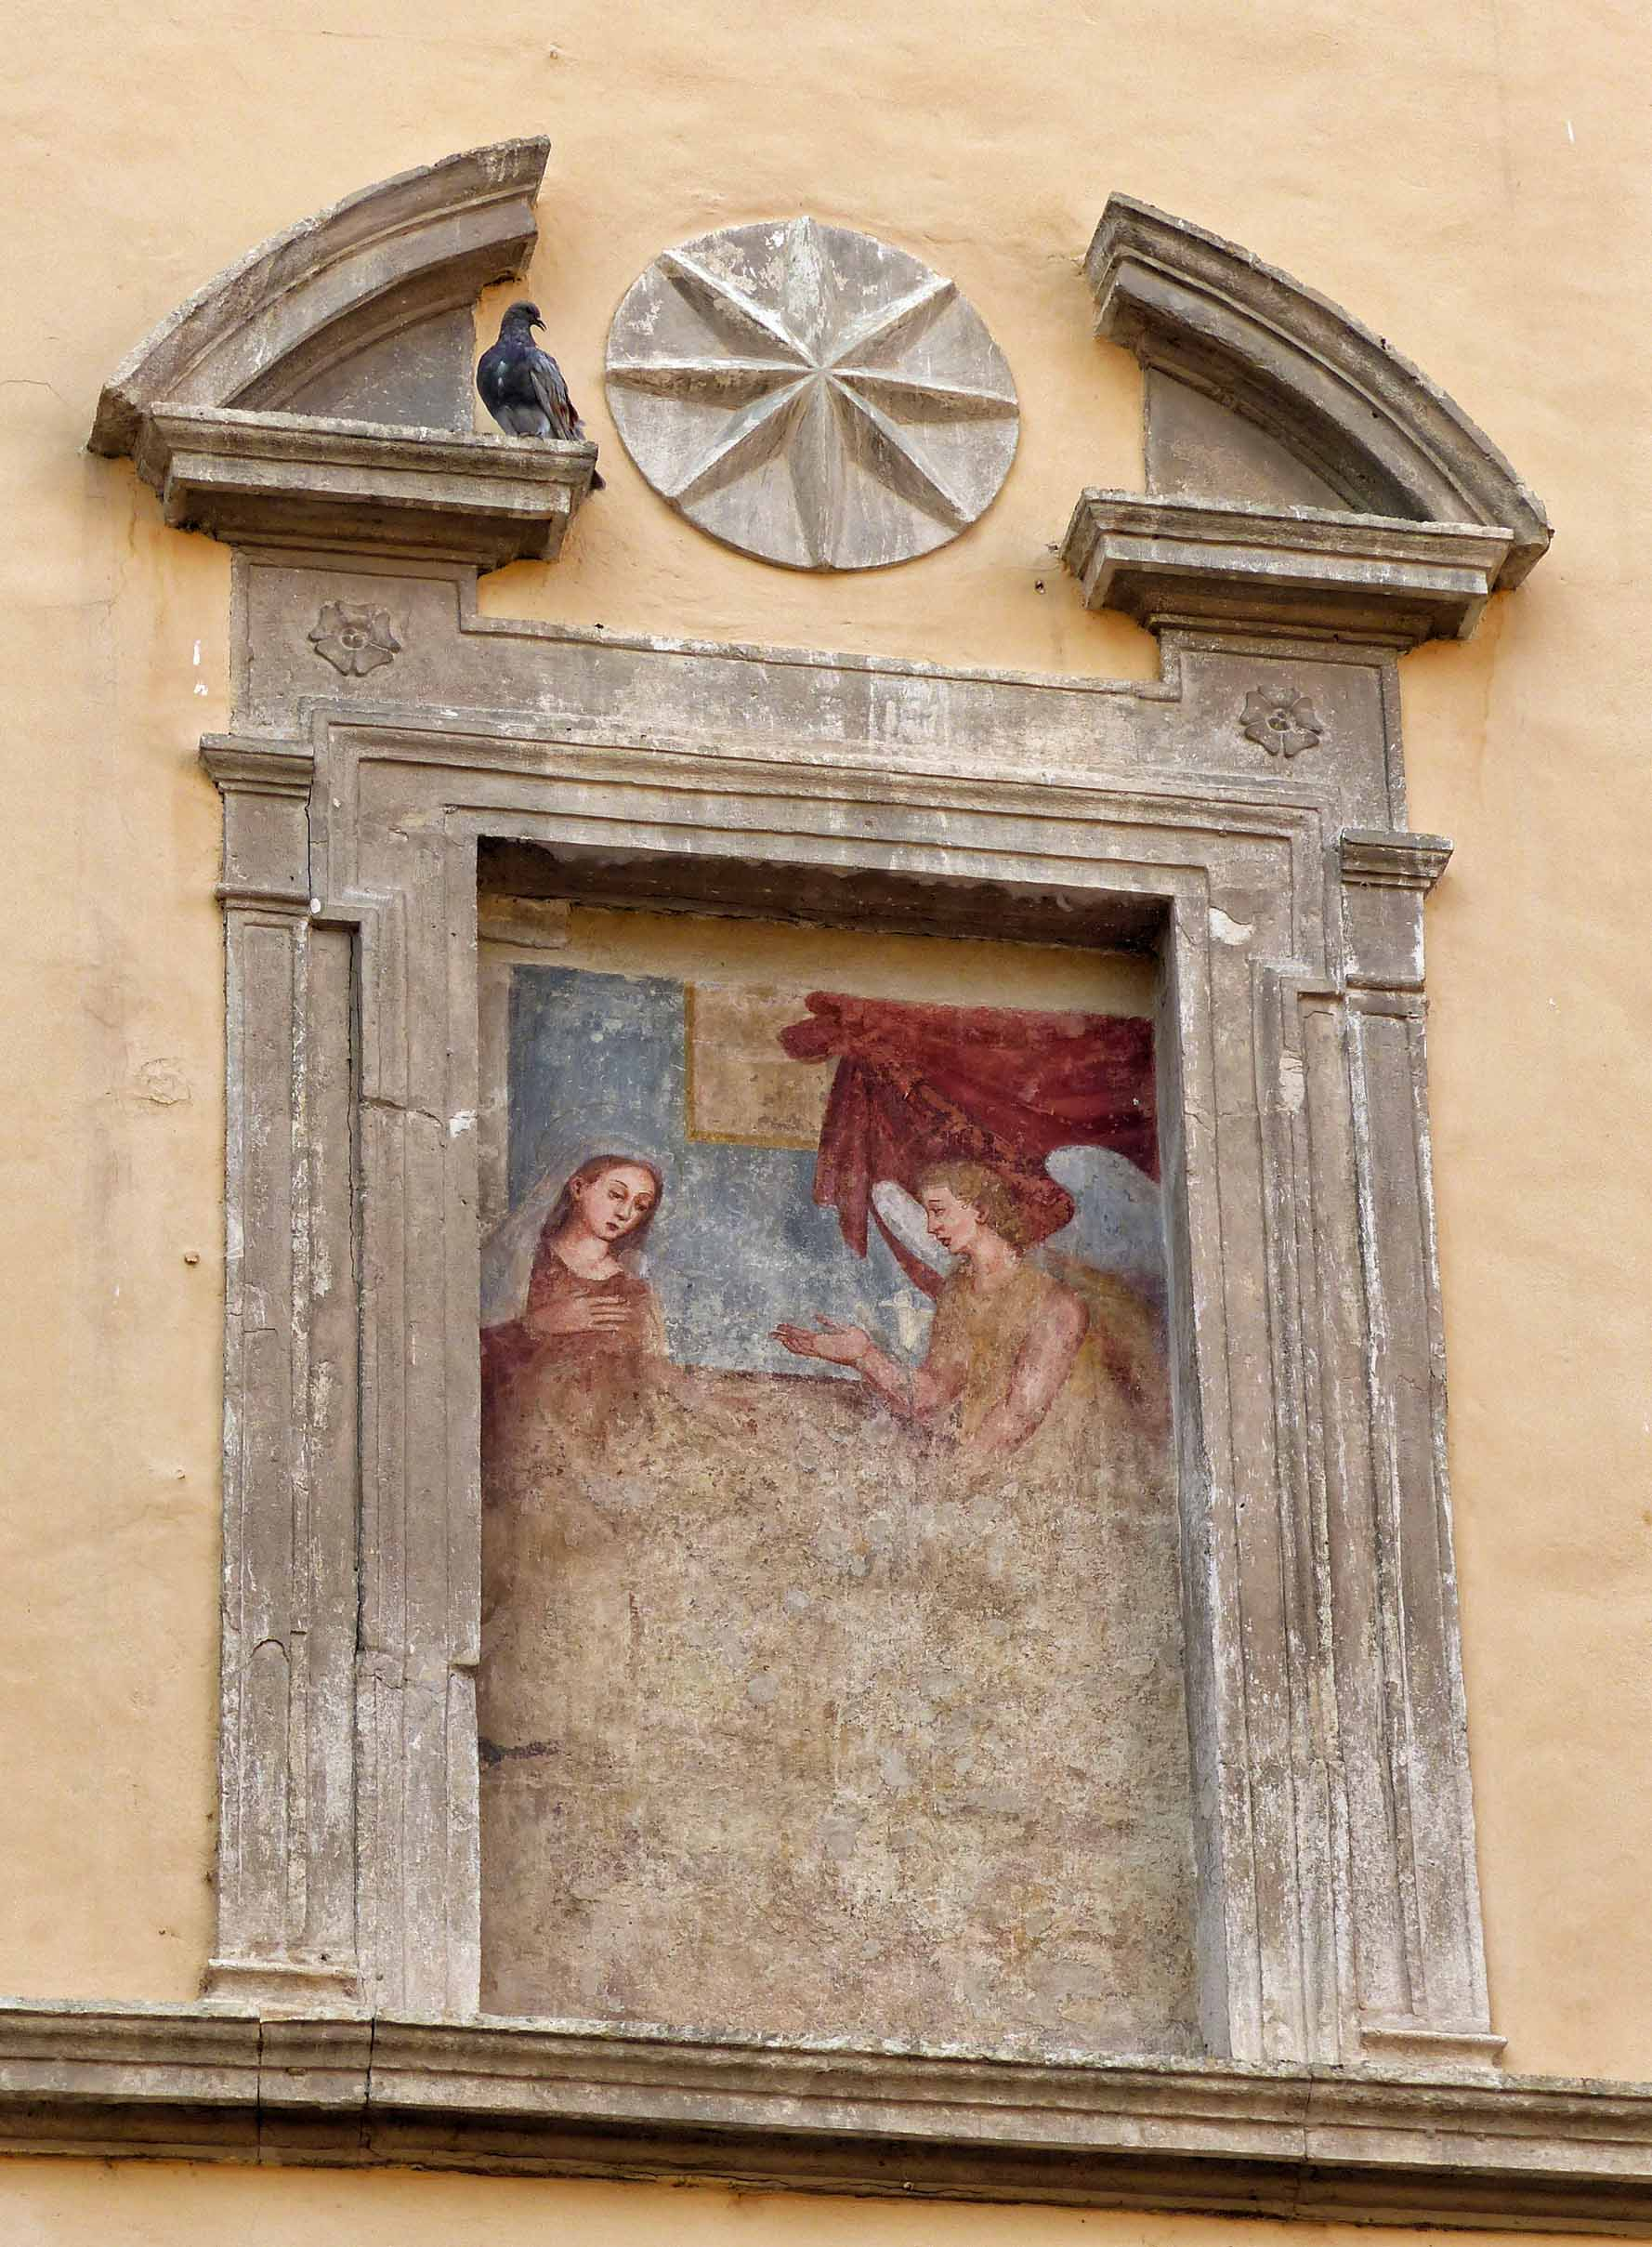 Painting of angels on a wall